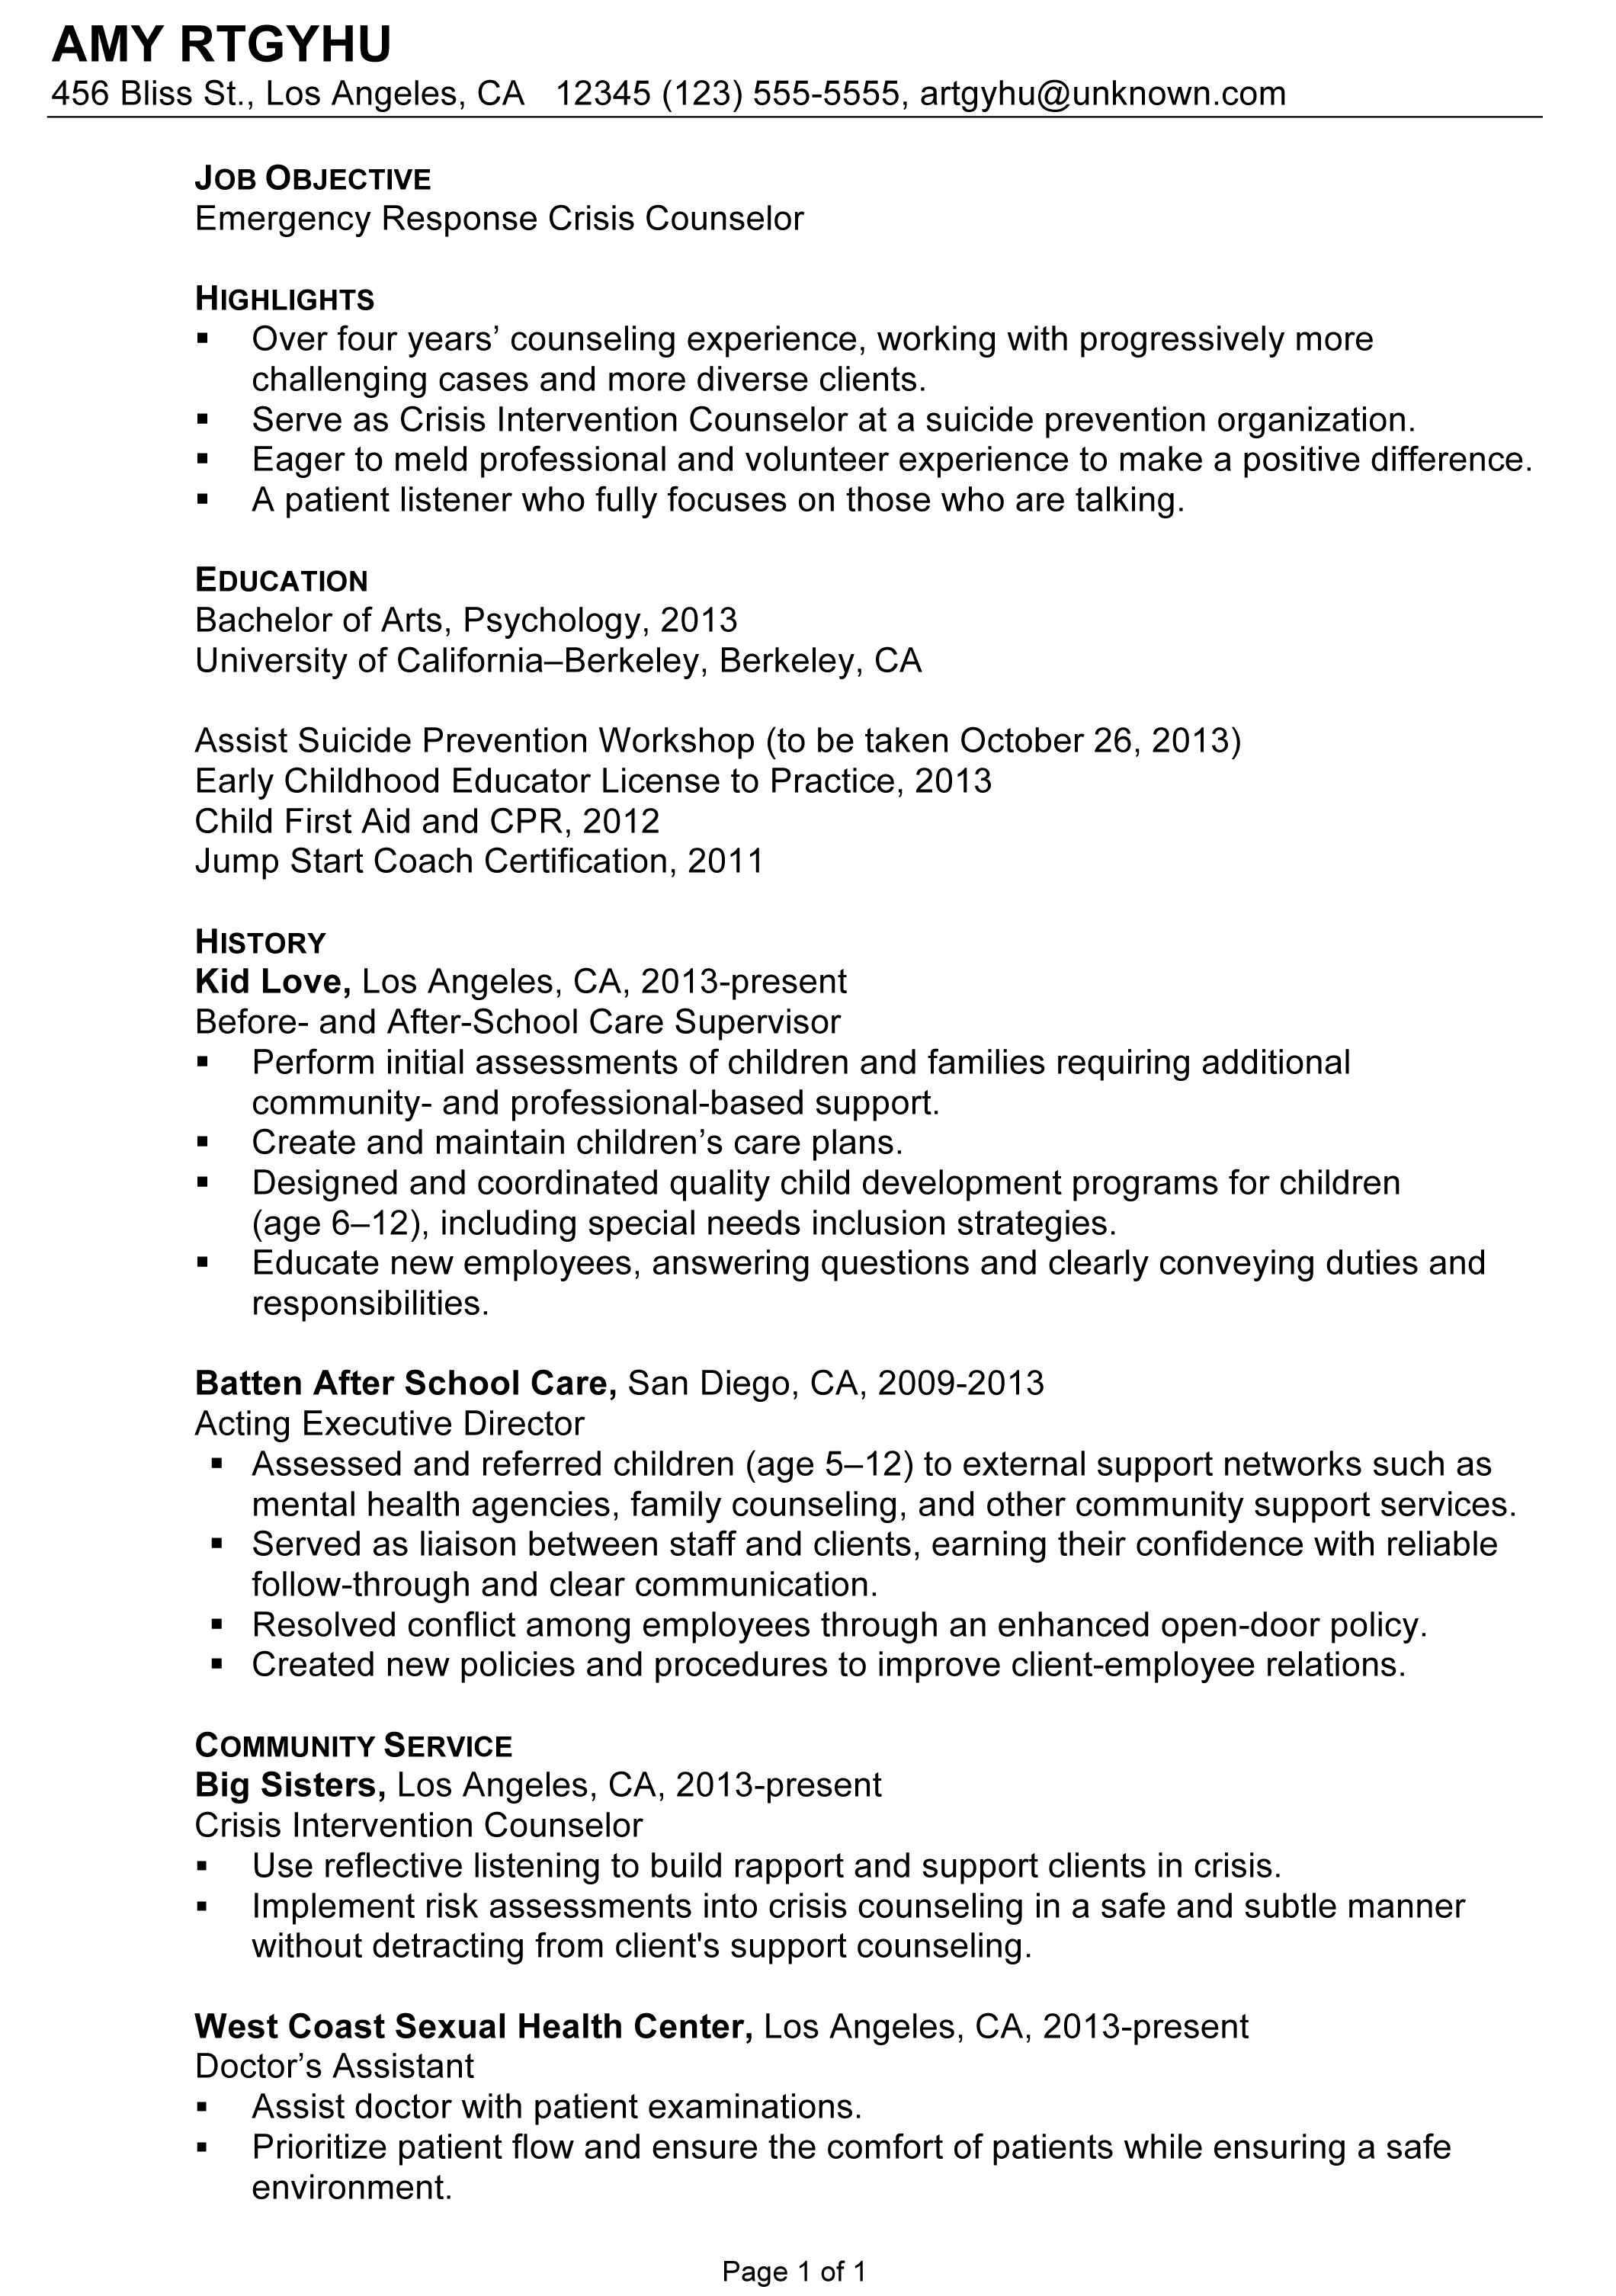 chronological resume sample emergency response crisis counselor. Resume Example. Resume CV Cover Letter